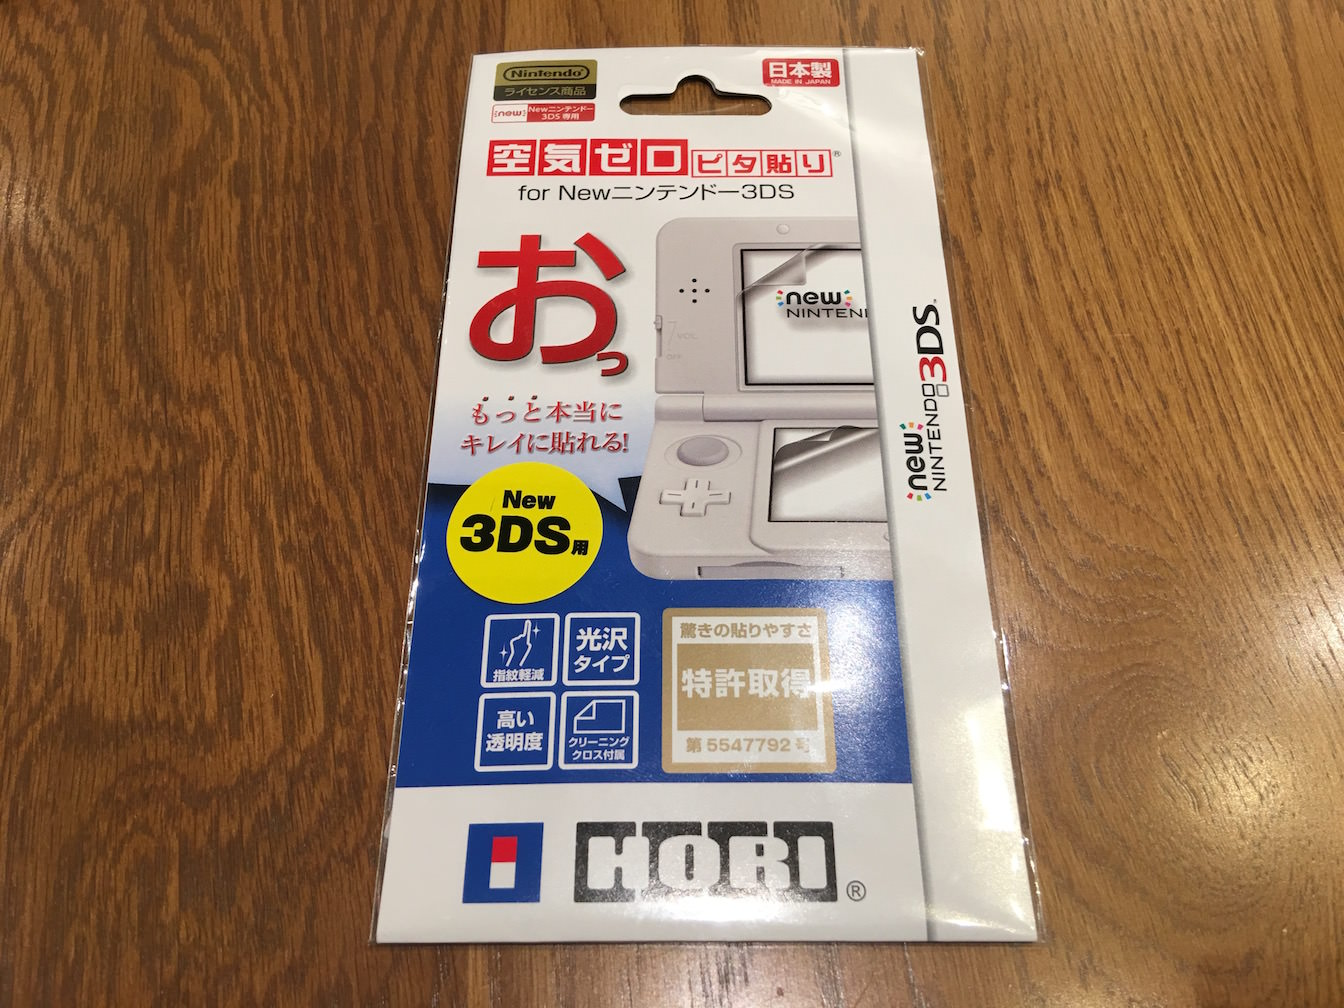 Review of zero pita filter for new nintendo 3ds 1